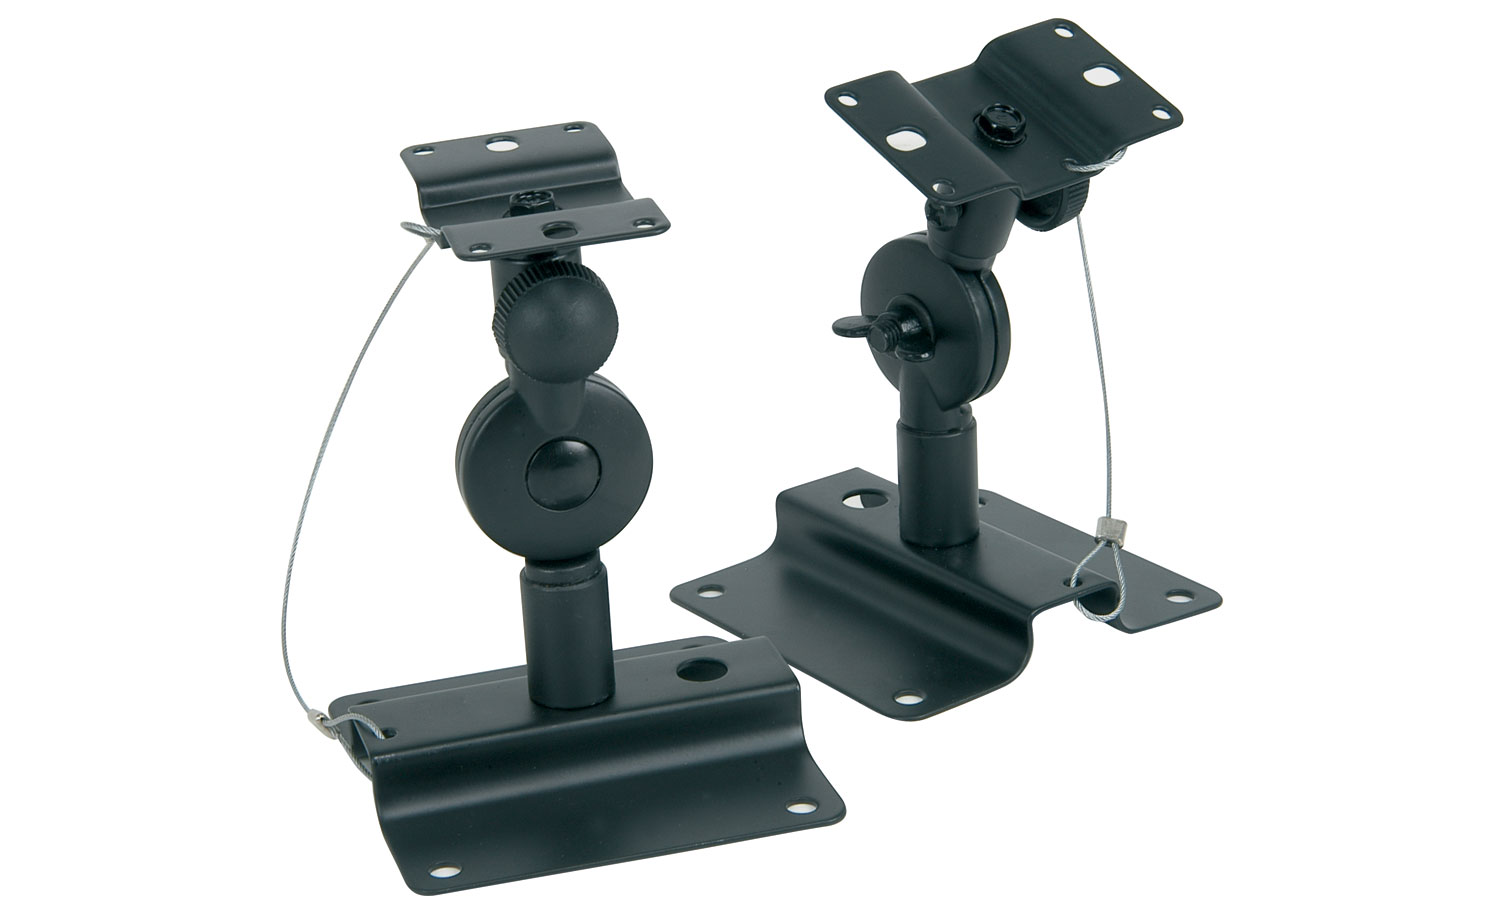 Adjustable speaker brackets - adjustable in 2 directions